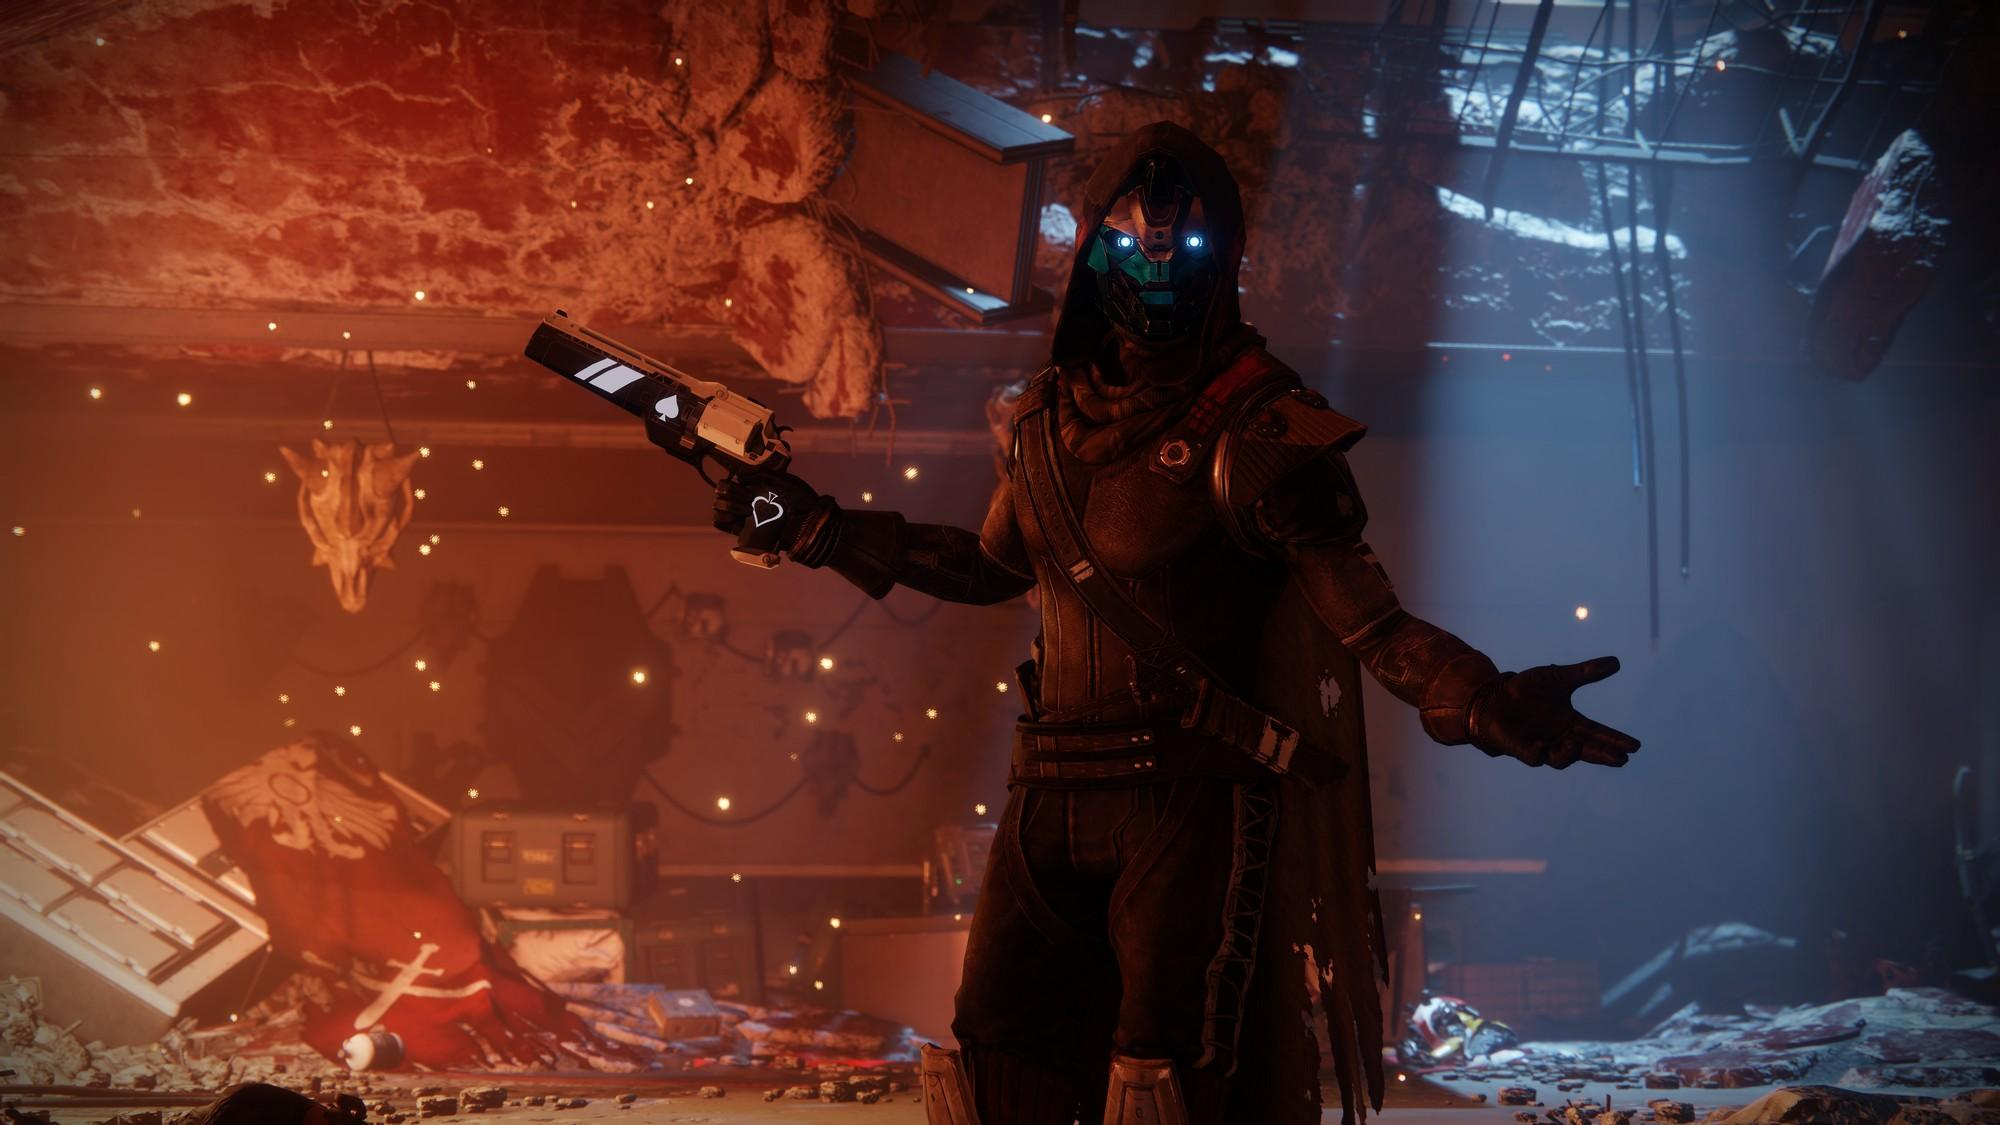 Destiny 2 Players Are Unhappy About the Limited Duration of the New Faction Rally Event